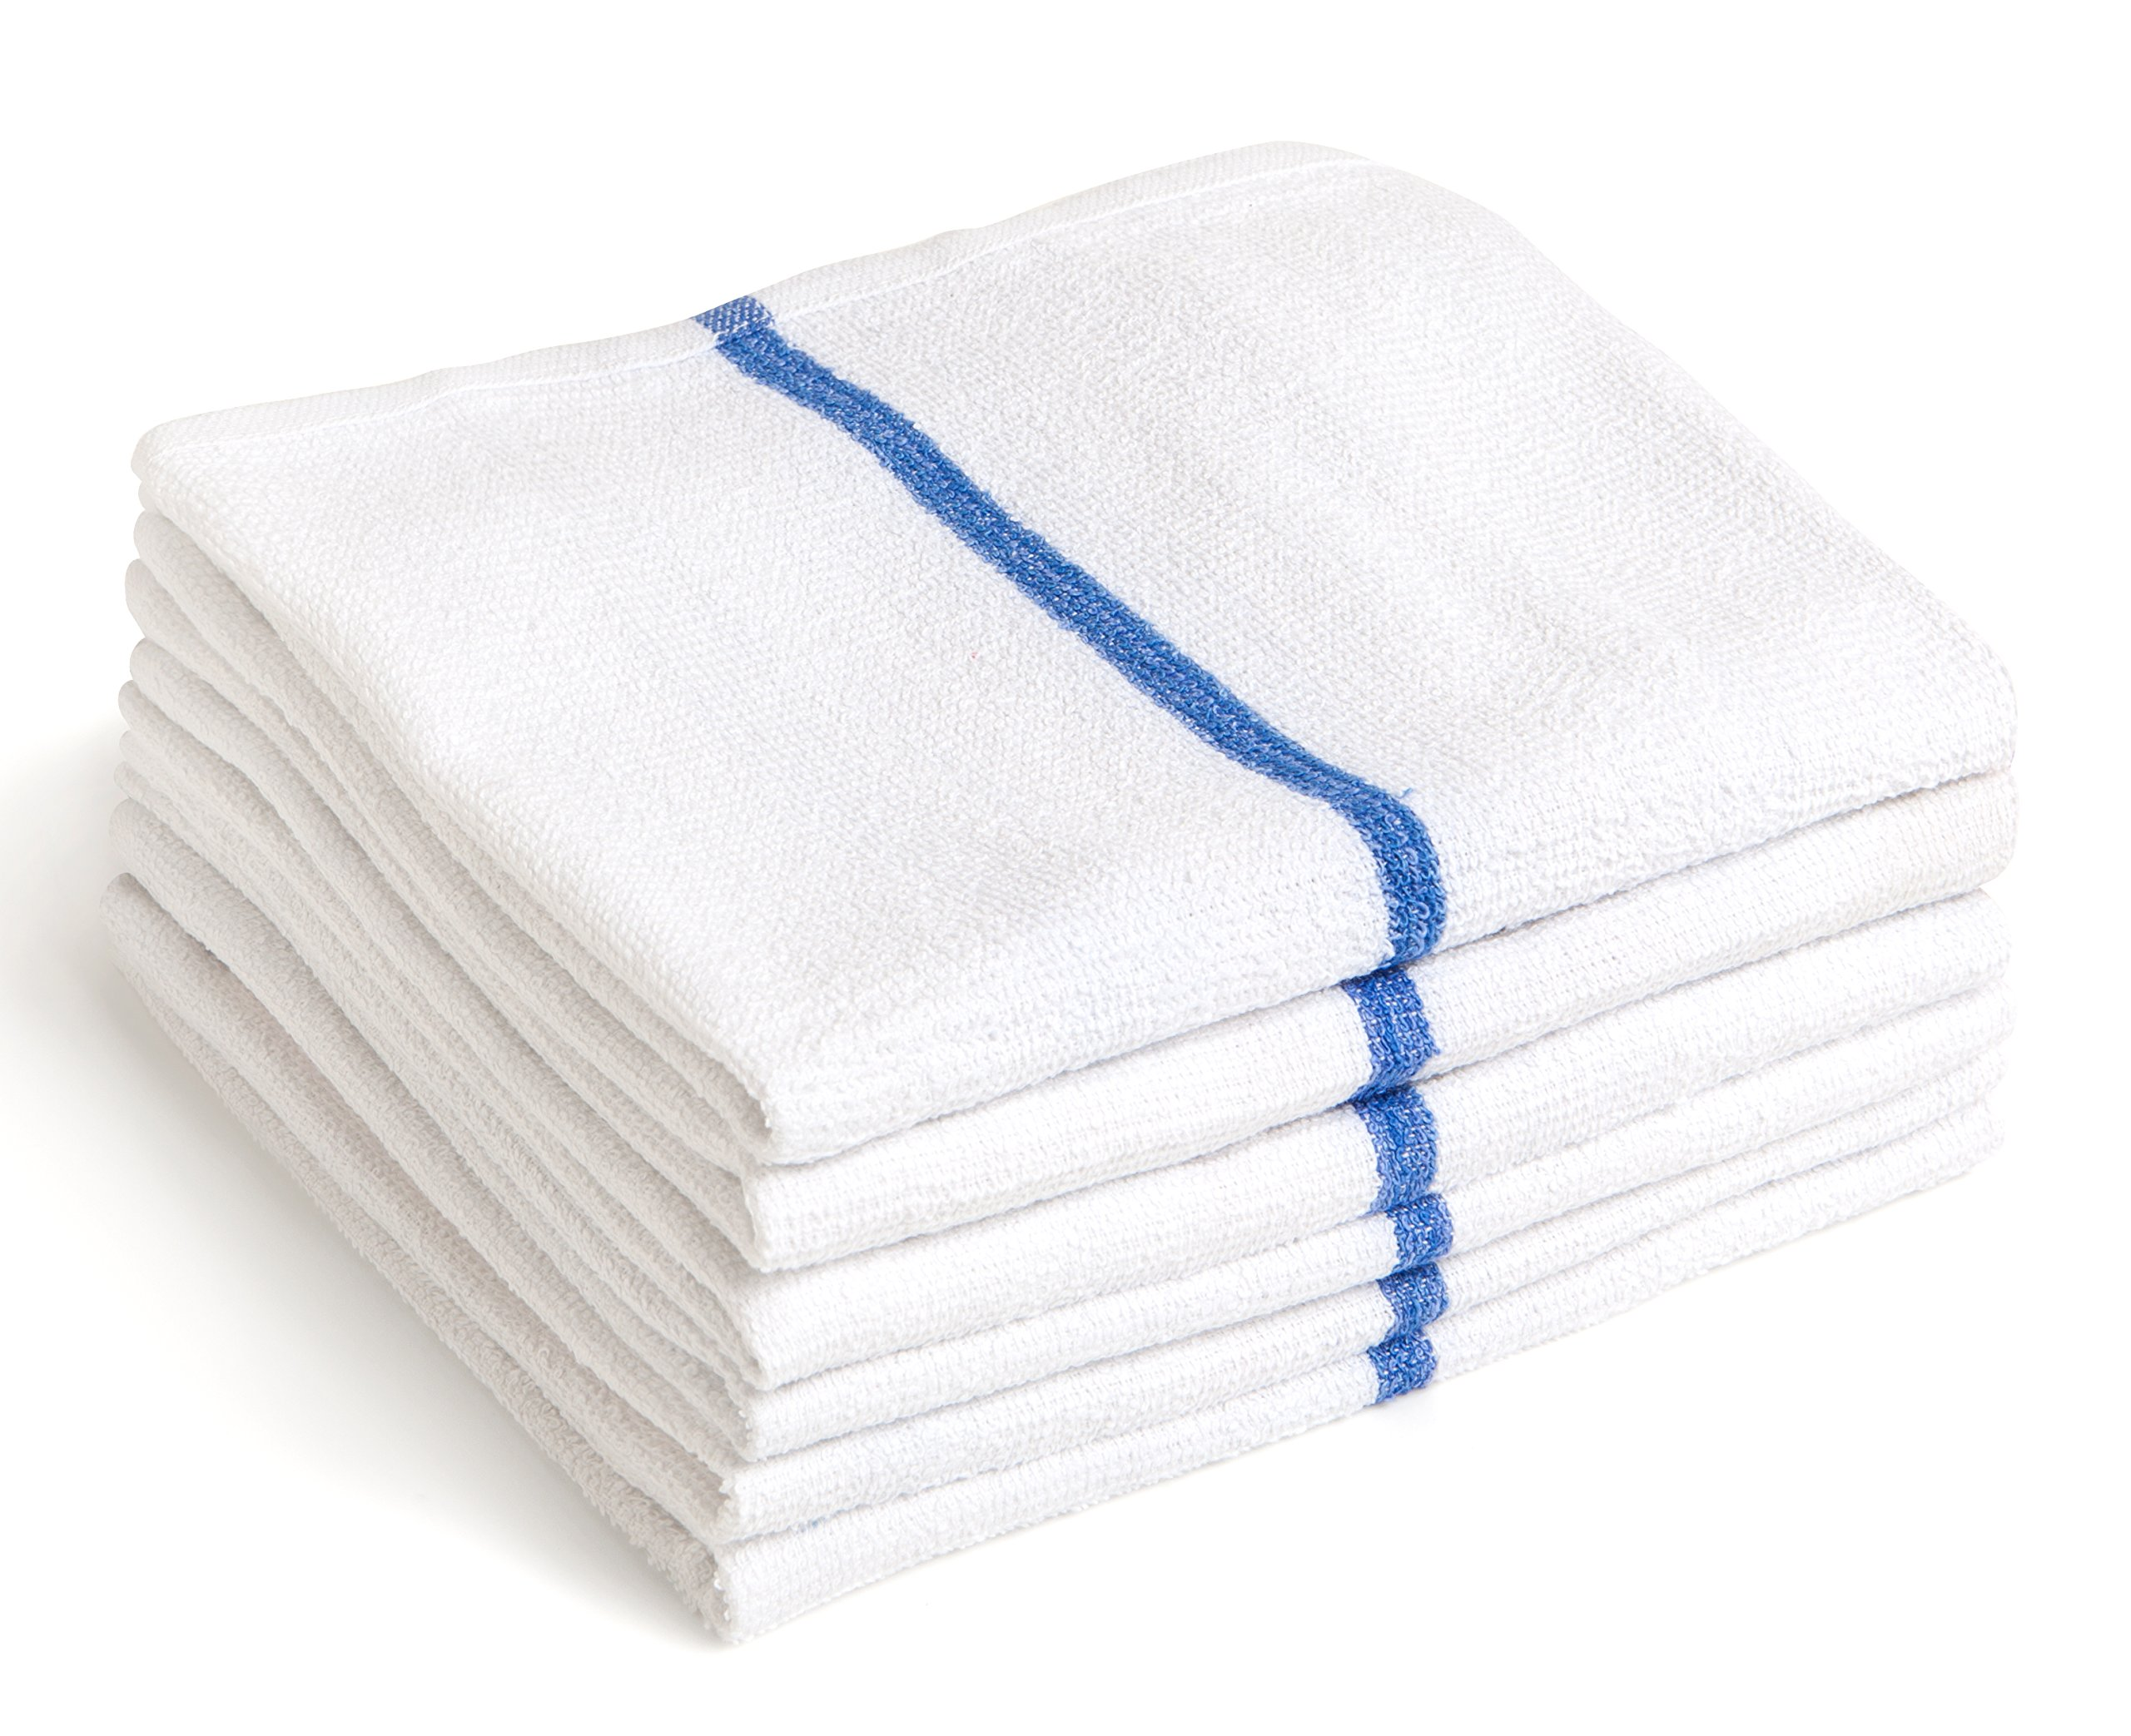 Aspen Towels 15 Bar Mops Kitchen Towels - 15'' x 18'' Commercial Grade 100% Cotton Kitchen Towels (High Density 28 oz/dozen) - Terry Bar Mop Dish Towel - Thick and Absorbent